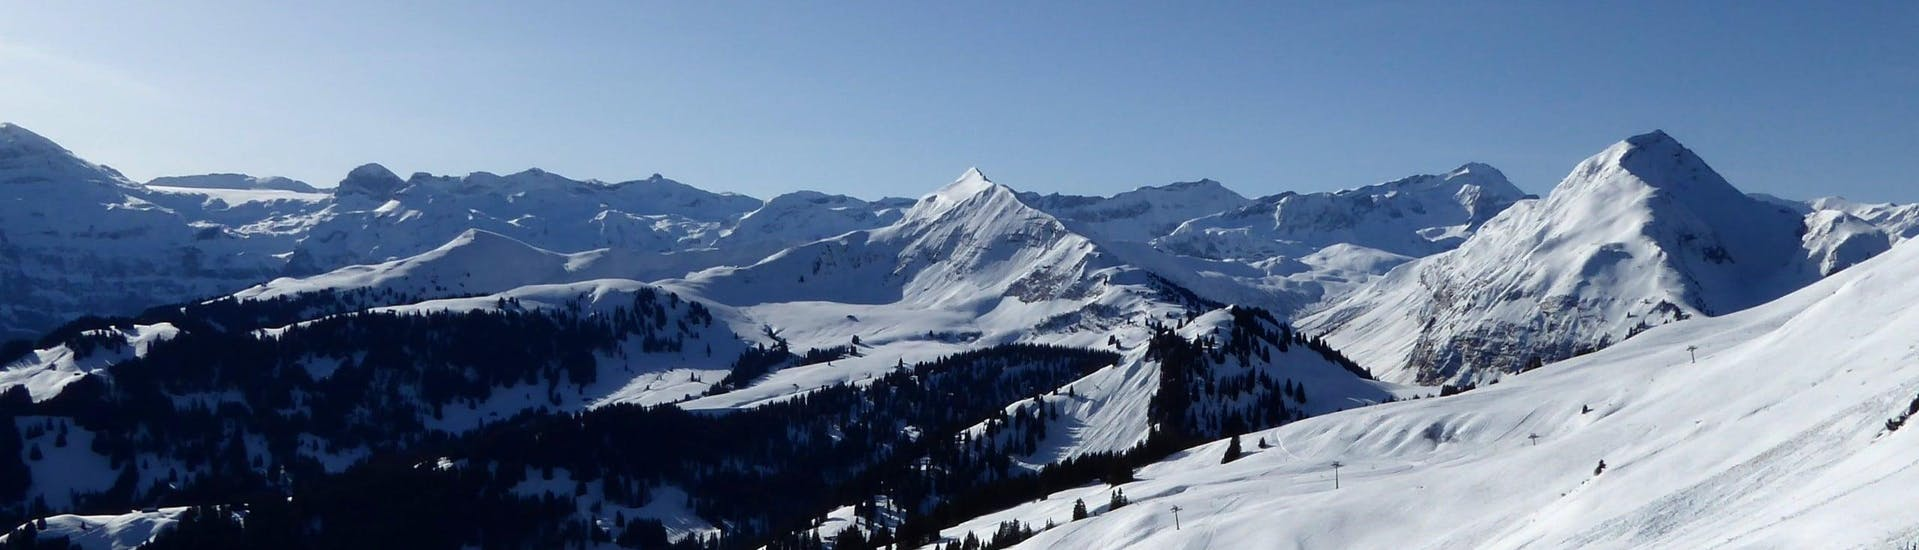 View over the sunny mountain landscape while learning to ski with the ski schools in Schönried-Saanenmöser-Zweisimmen.